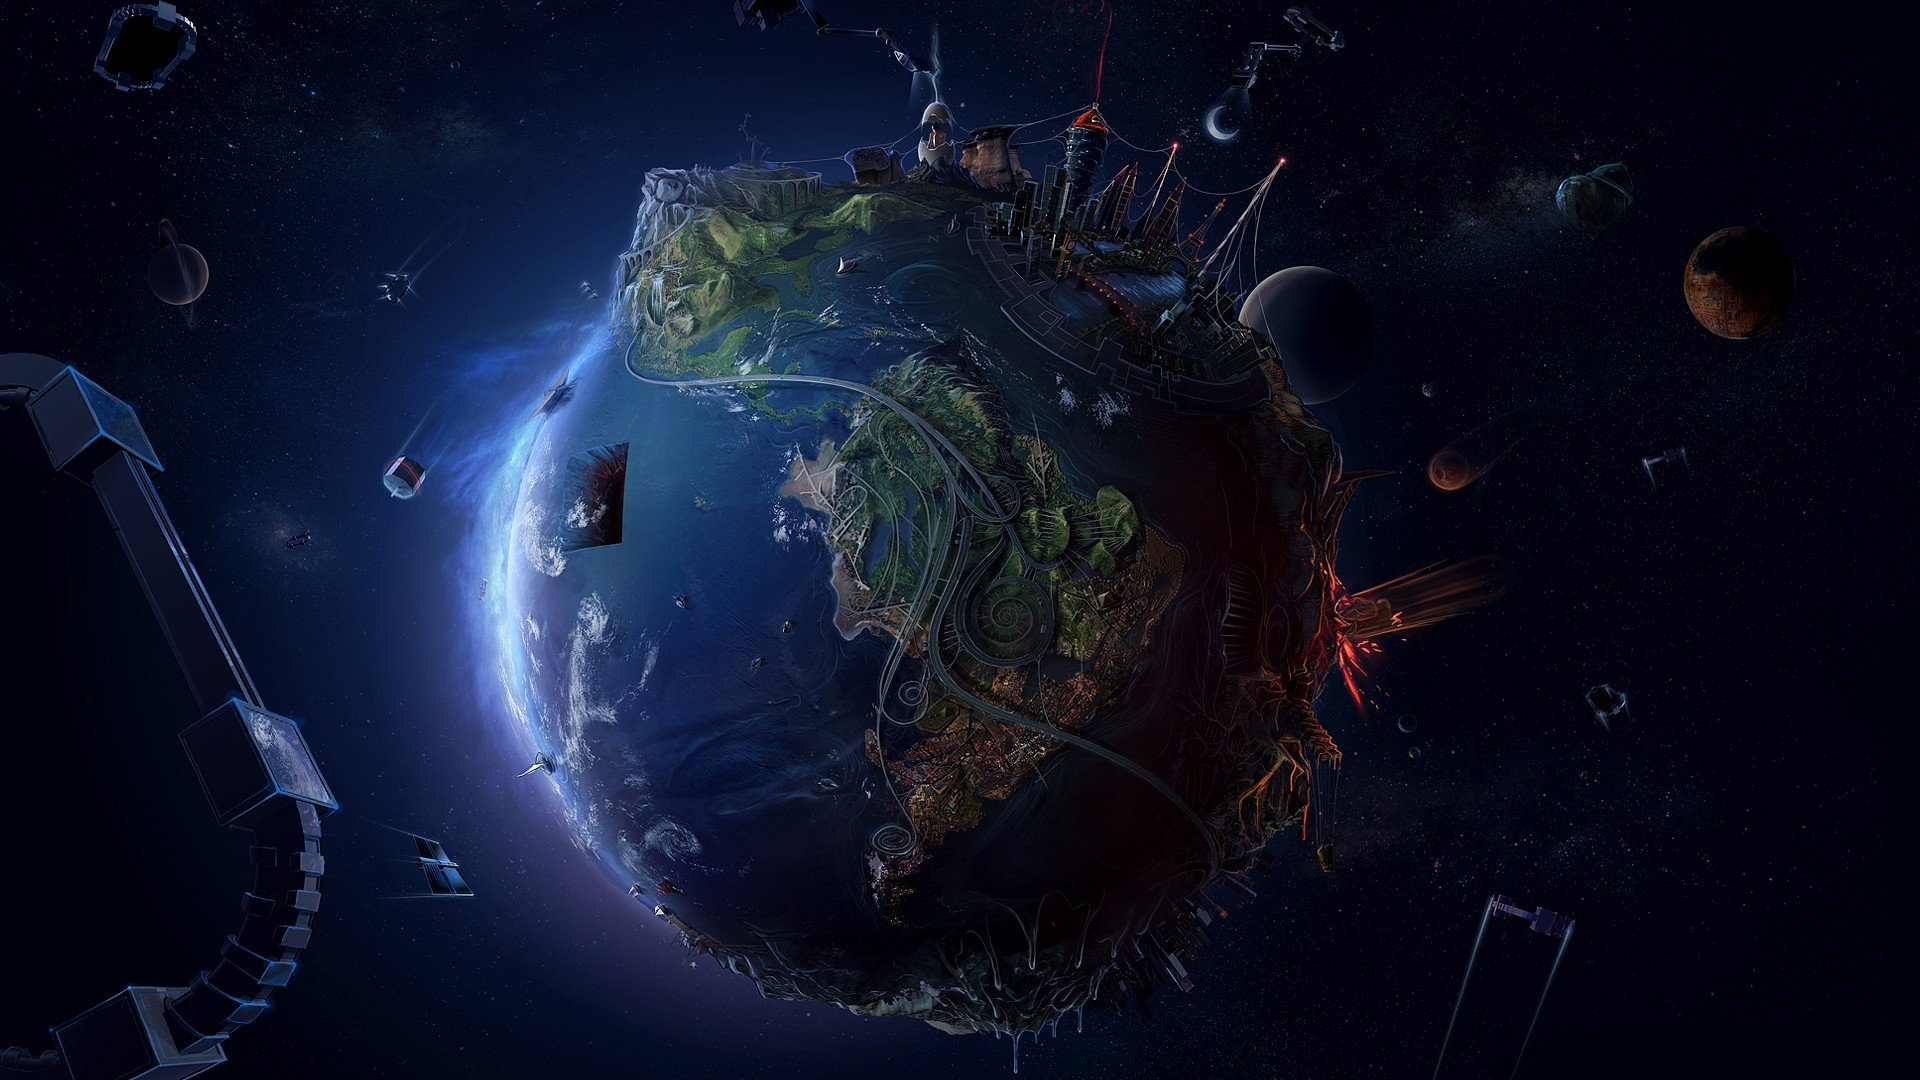 1920x1080px cool space background wallpapers - wallpapersafari